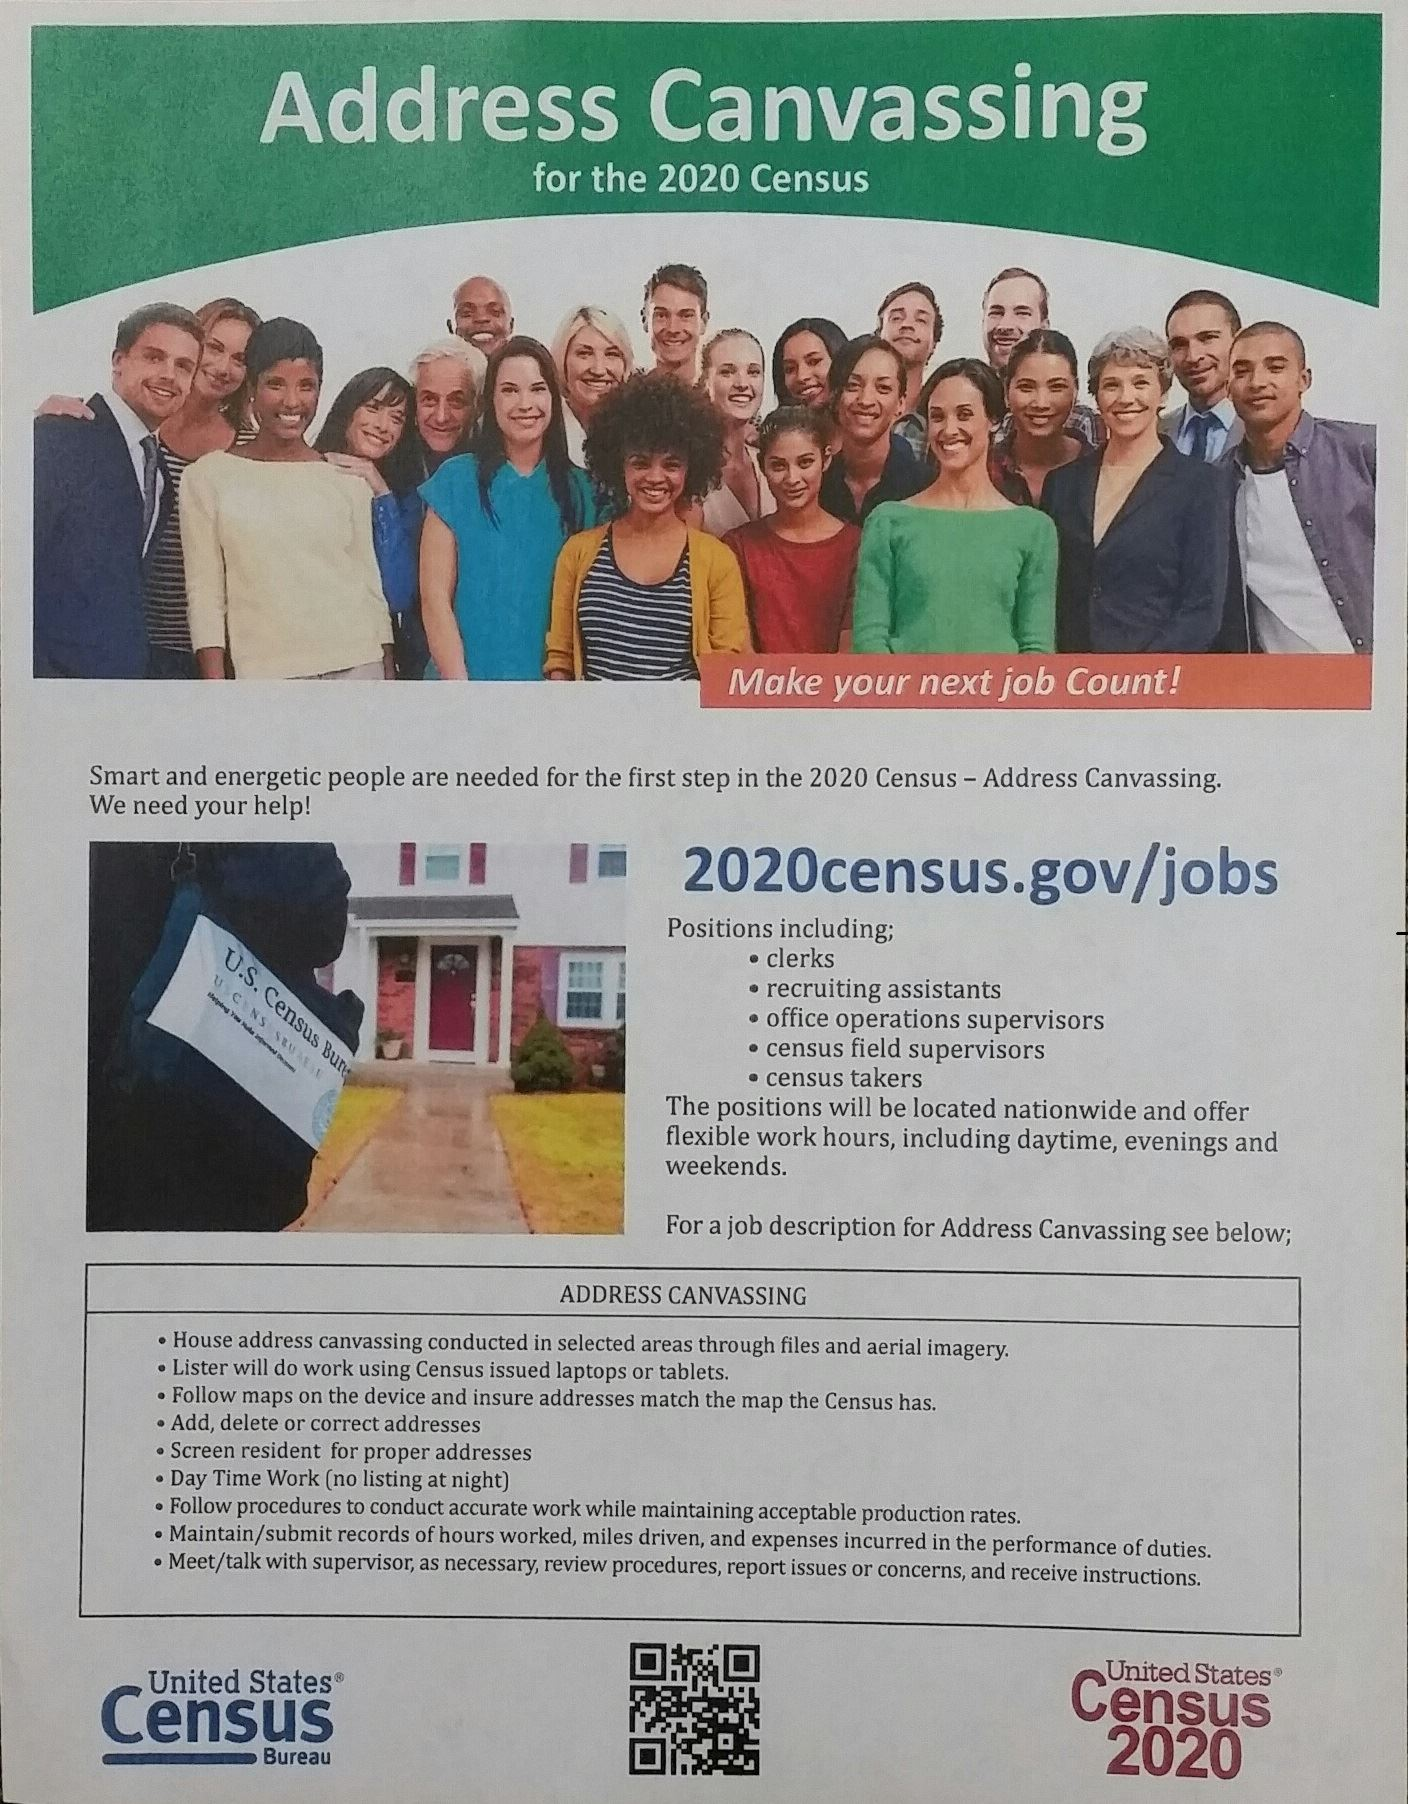 Address Canvassing for the 2020 Census Flyer